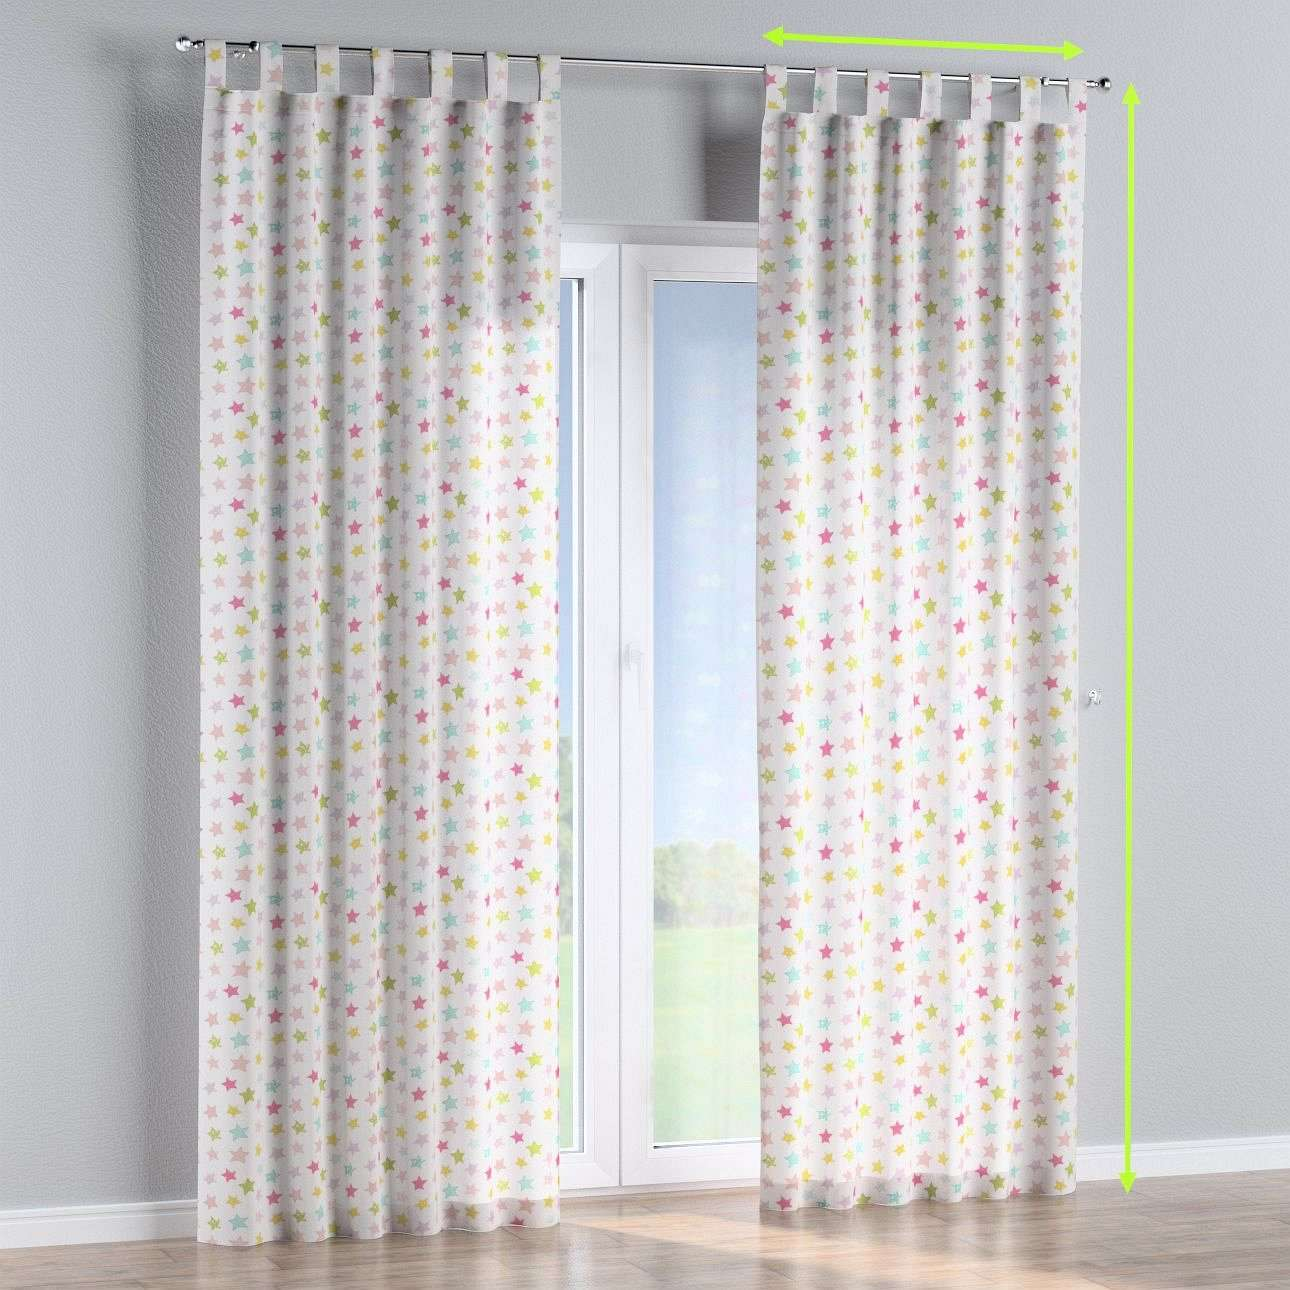 Tab top lined curtains in collection Little World, fabric: 141-52